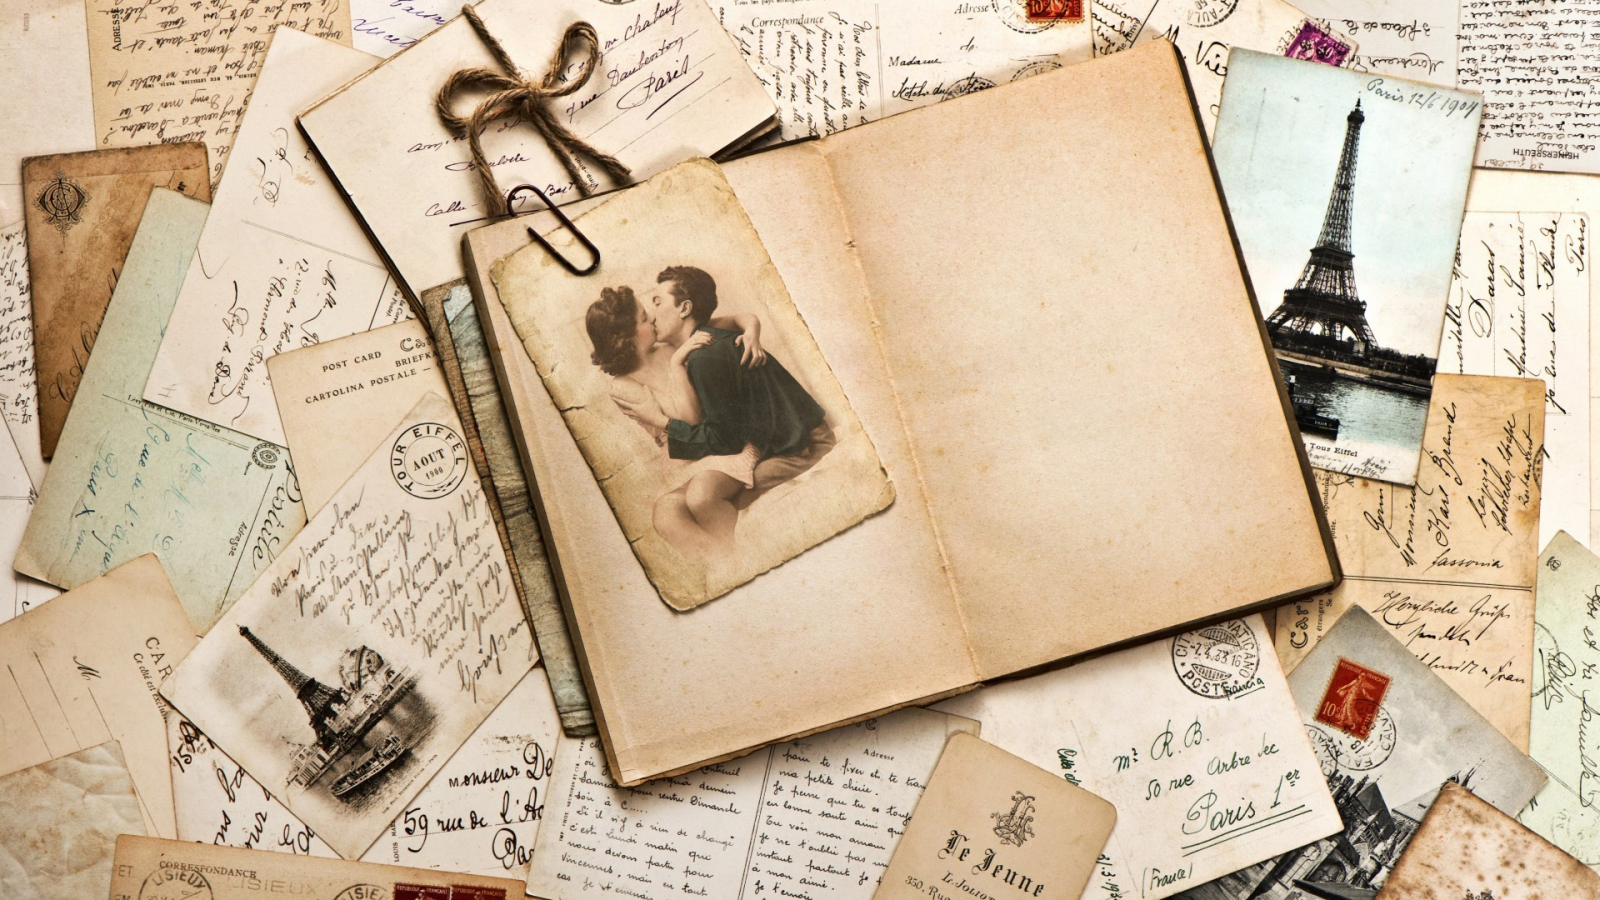 Free download rate select rating give vintage love letters 1 5 ...